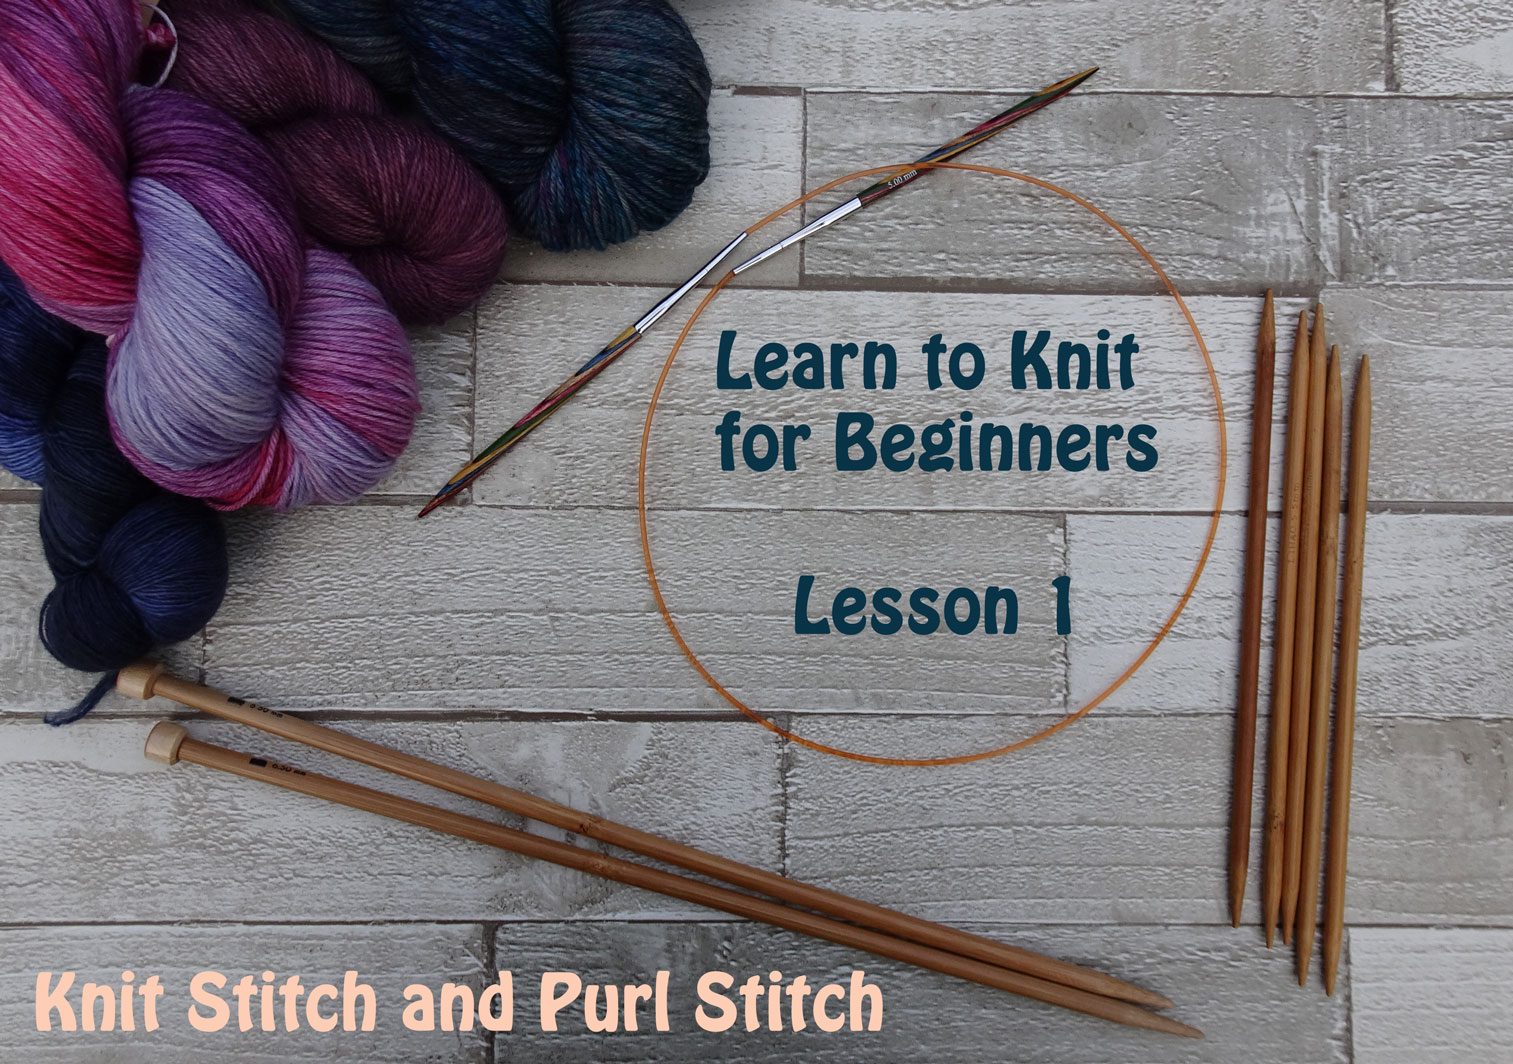 How To Knit Purl Stitch For Beginners : learn-to-knit-for-beginners,-lesson-1 Jo-Creates